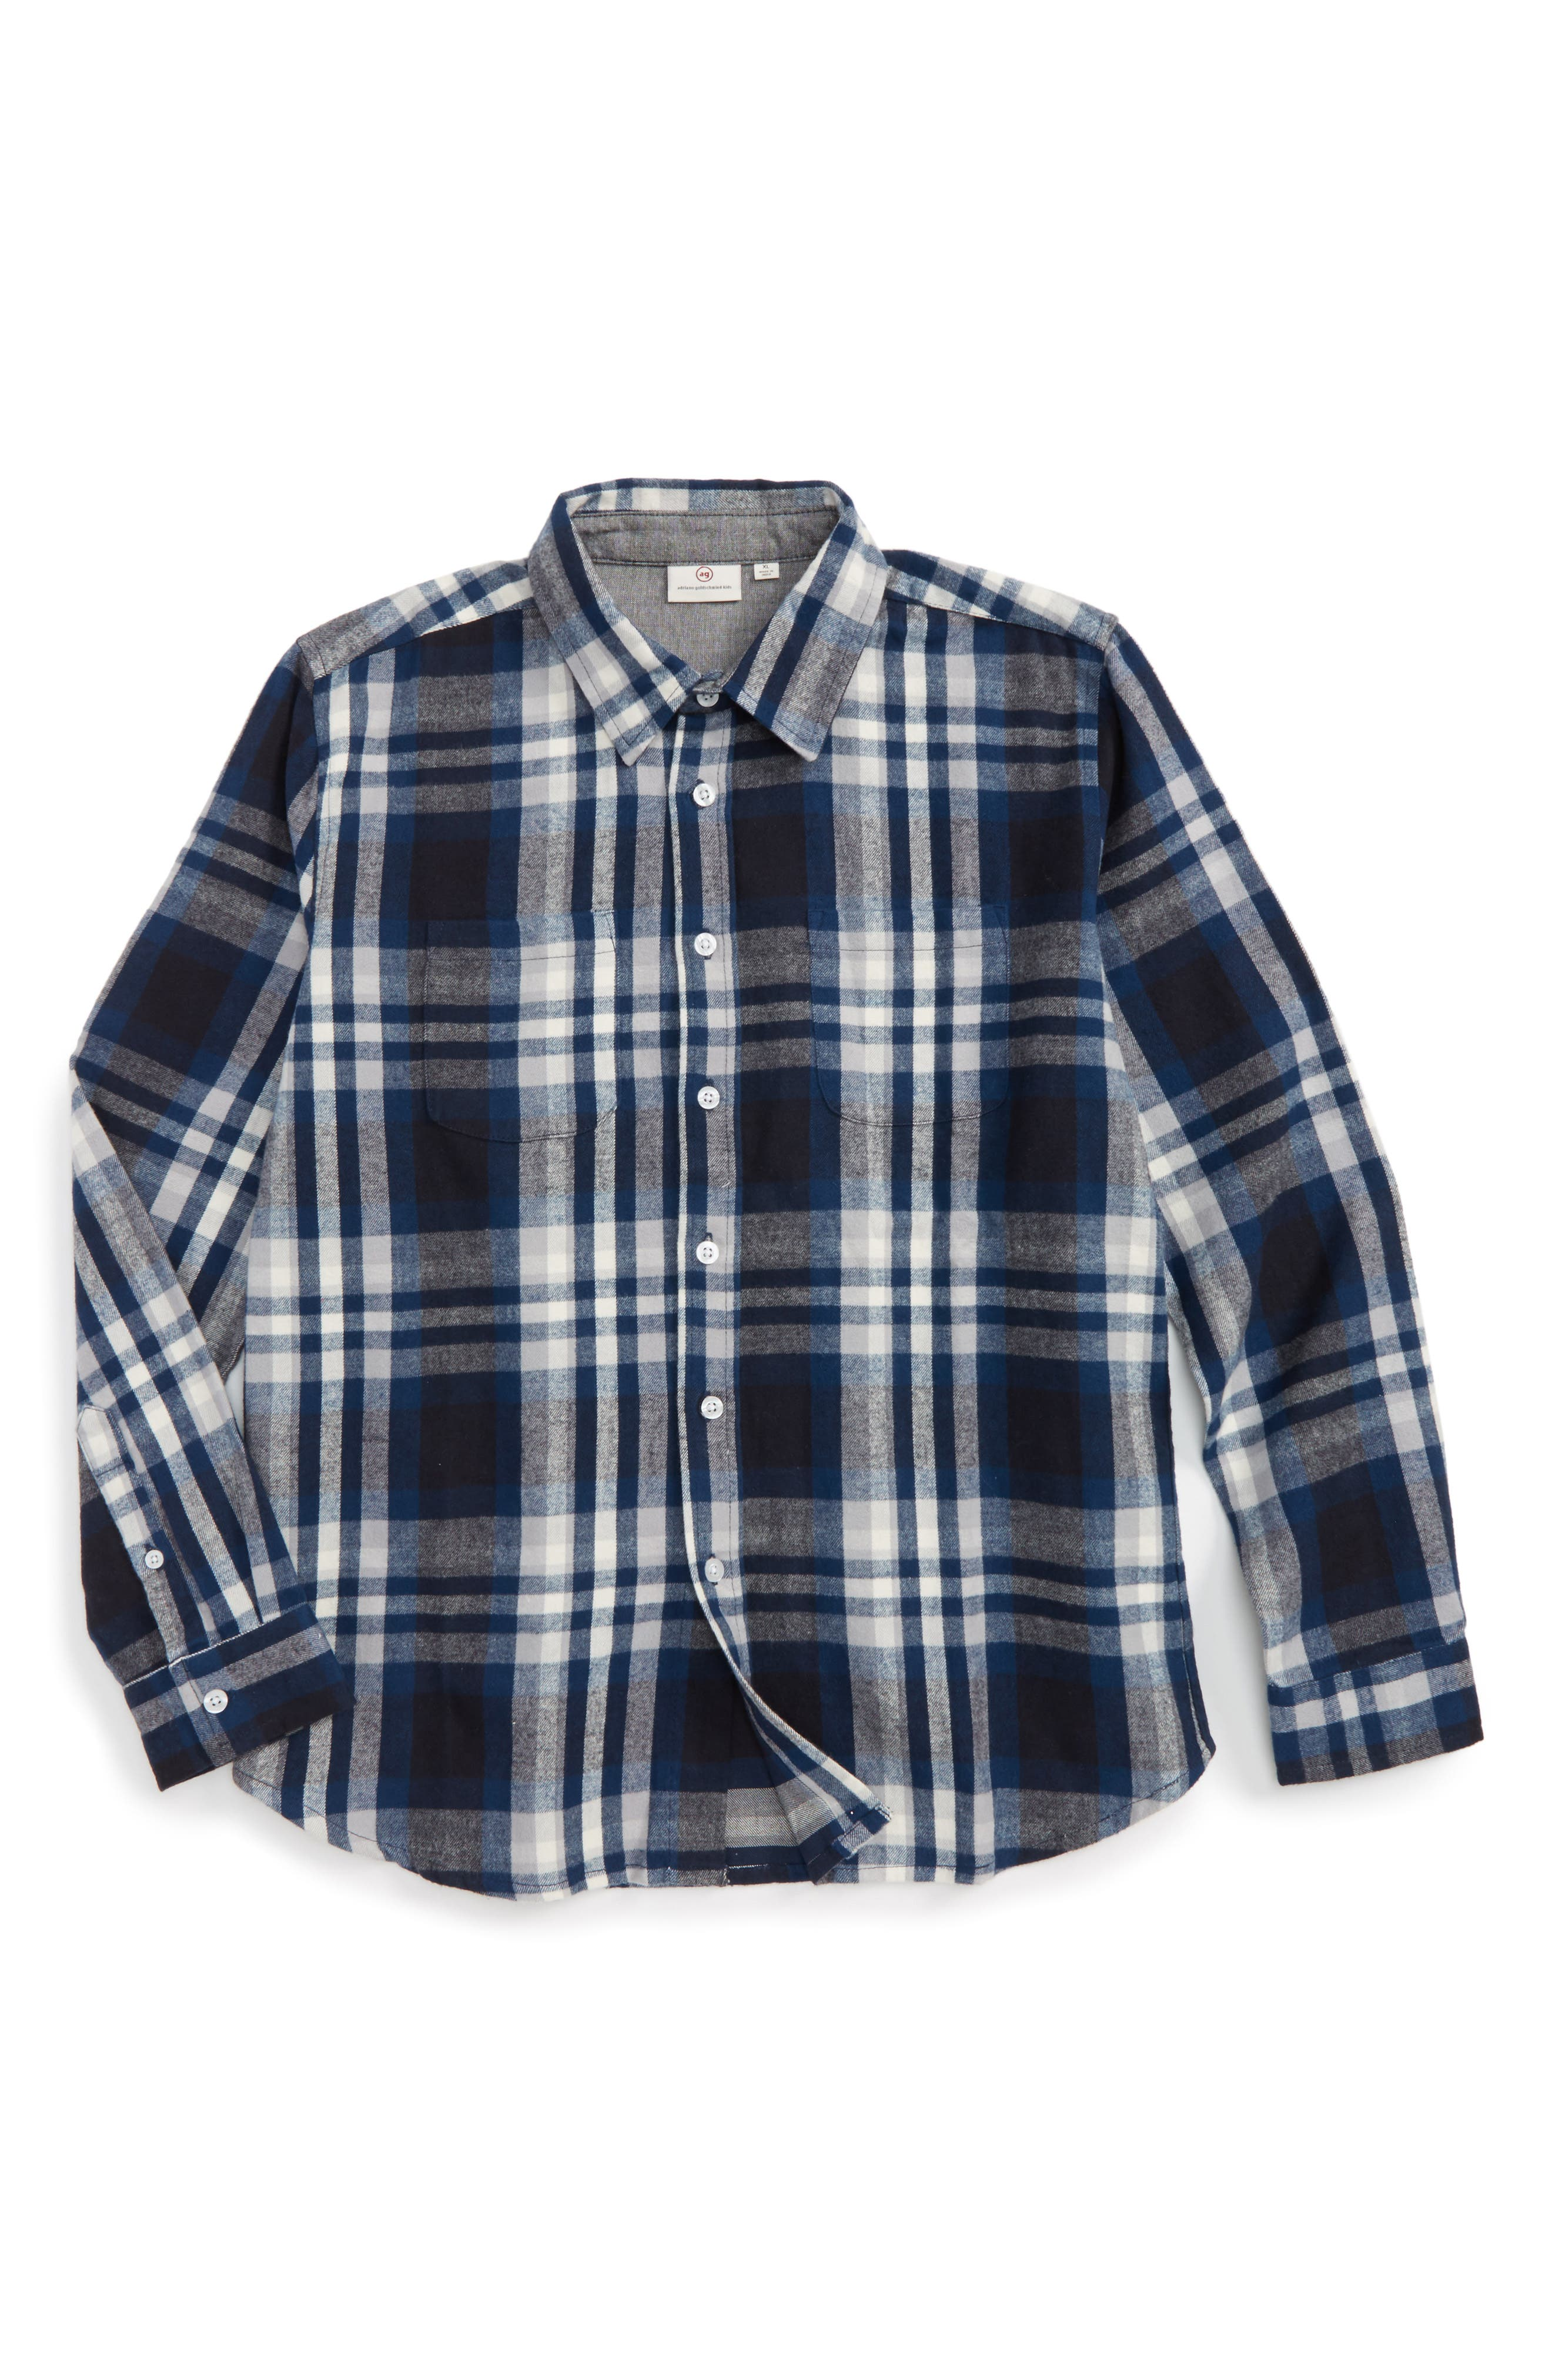 Main Image - ag adriano goldschmied kids Standford Flannel Shirt (Little Boys & Big Boys)